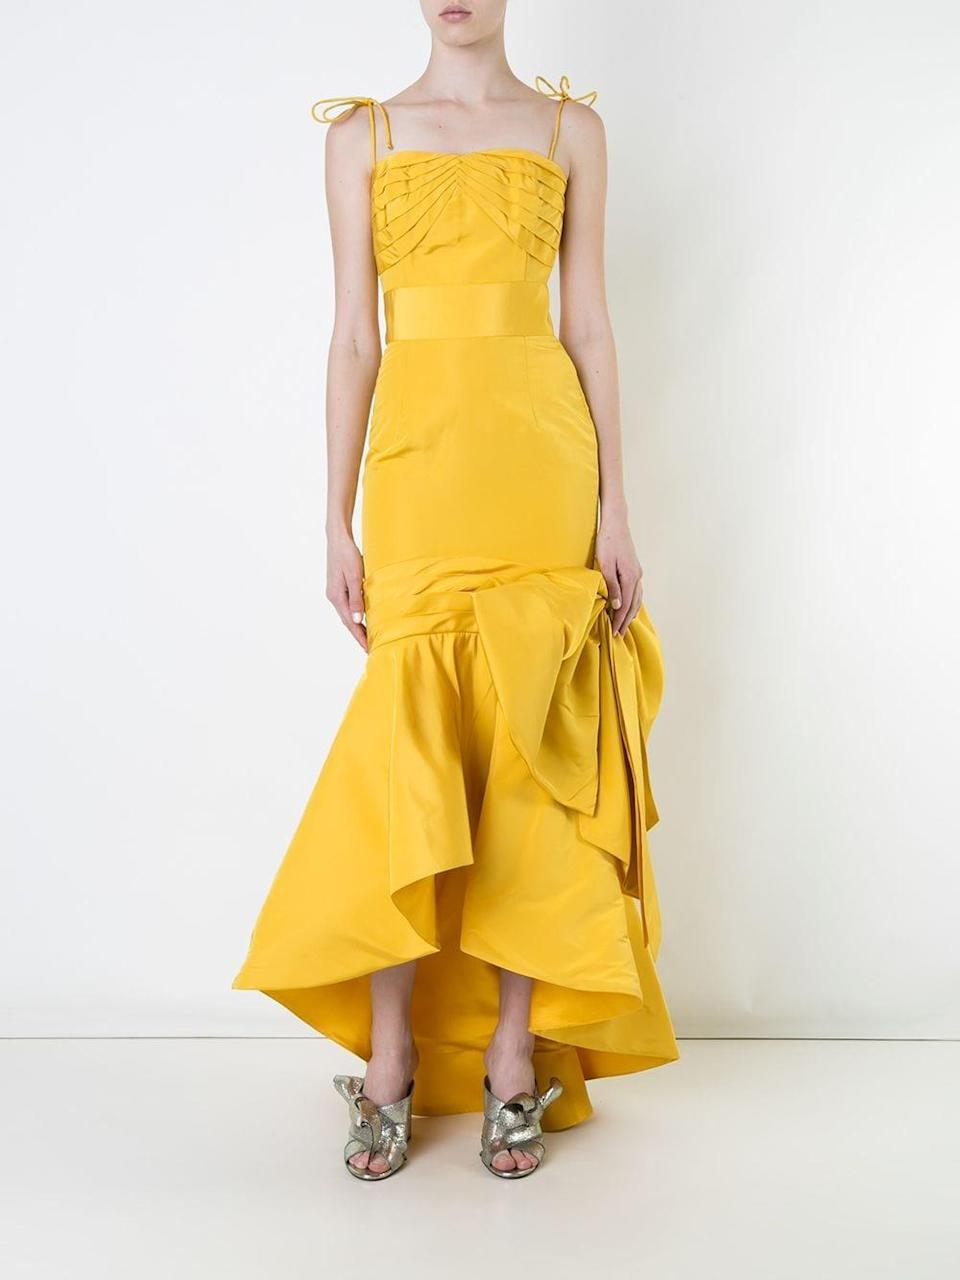 """<h2>Bambah Mermaid Gown In Marigold</h2><br>This 100% silk fluted gown would have made a statement in plain white, but in a brilliant shade of sunshine yellow, it's bound to make your special day even more unforgettable. (It's also in major markdown mode with plentiful sizes remaining.)<br><br><em>Shop Bambah at <strong><a href=""""https://www.farfetch.com/shopping/women/bambah/items.aspx"""" rel=""""nofollow noopener"""" target=""""_blank"""" data-ylk=""""slk:Farfetch"""" class=""""link rapid-noclick-resp"""">Farfetch</a></strong></em><br><br><strong>Bambah</strong> Mermaid Effect Gown, $, available at <a href=""""https://go.skimresources.com/?id=30283X879131&url=https%3A%2F%2Fwww.farfetch.com%2Fshopping%2Fwomen%2Fbambah-mermaid-effect-gown-item-12118951.aspx%3Fstoreid%3D10735"""" rel=""""nofollow noopener"""" target=""""_blank"""" data-ylk=""""slk:Farfetch"""" class=""""link rapid-noclick-resp"""">Farfetch</a>"""